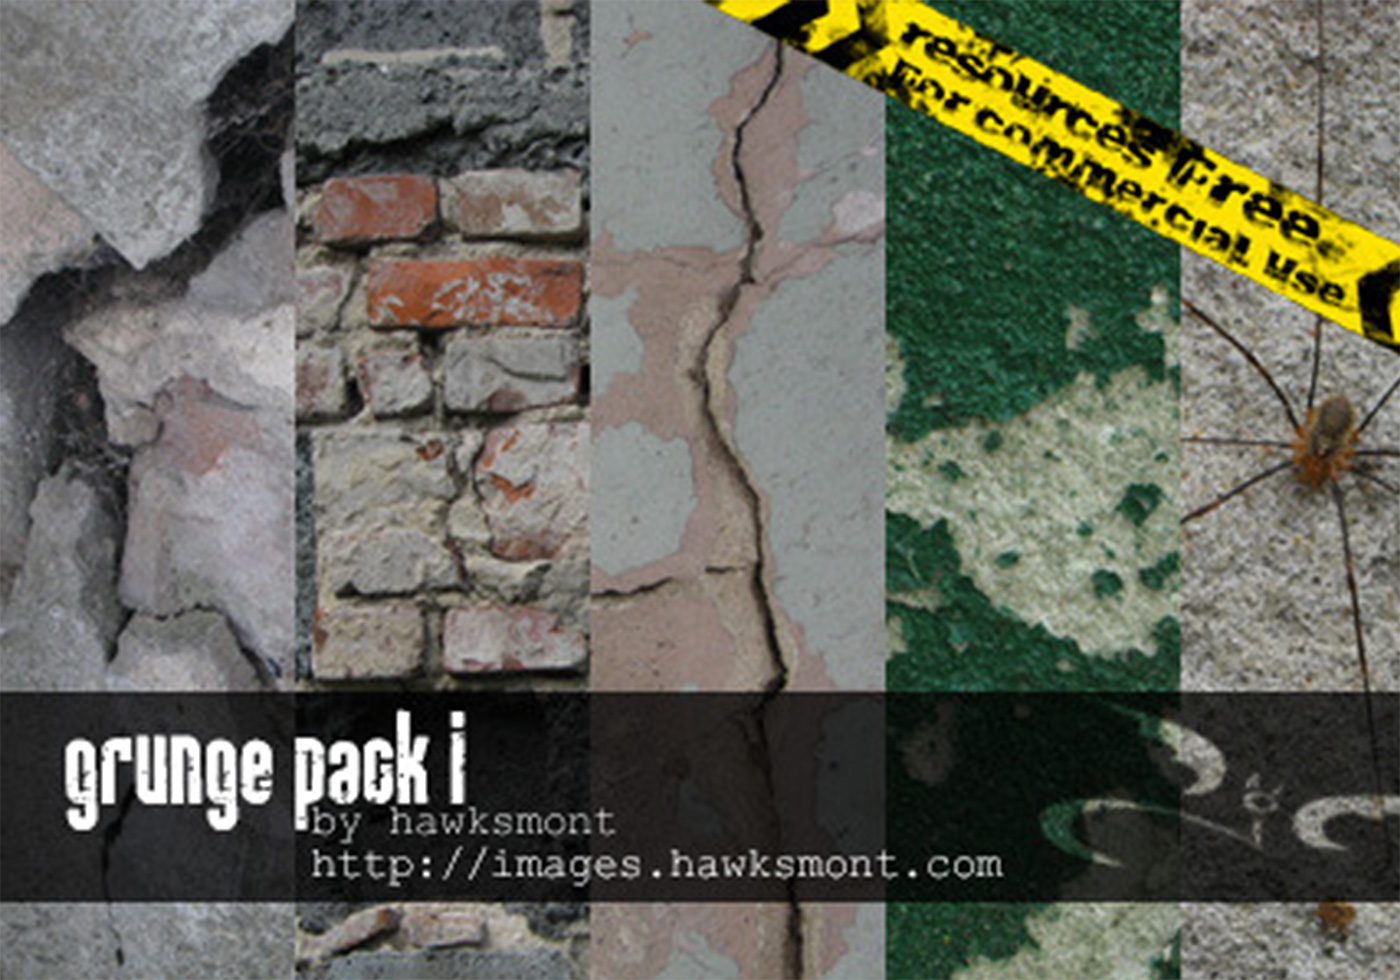 Grunge Pack I - Free Photoshop Brushes at Brusheezy! Broken Brick Wall Photoshop